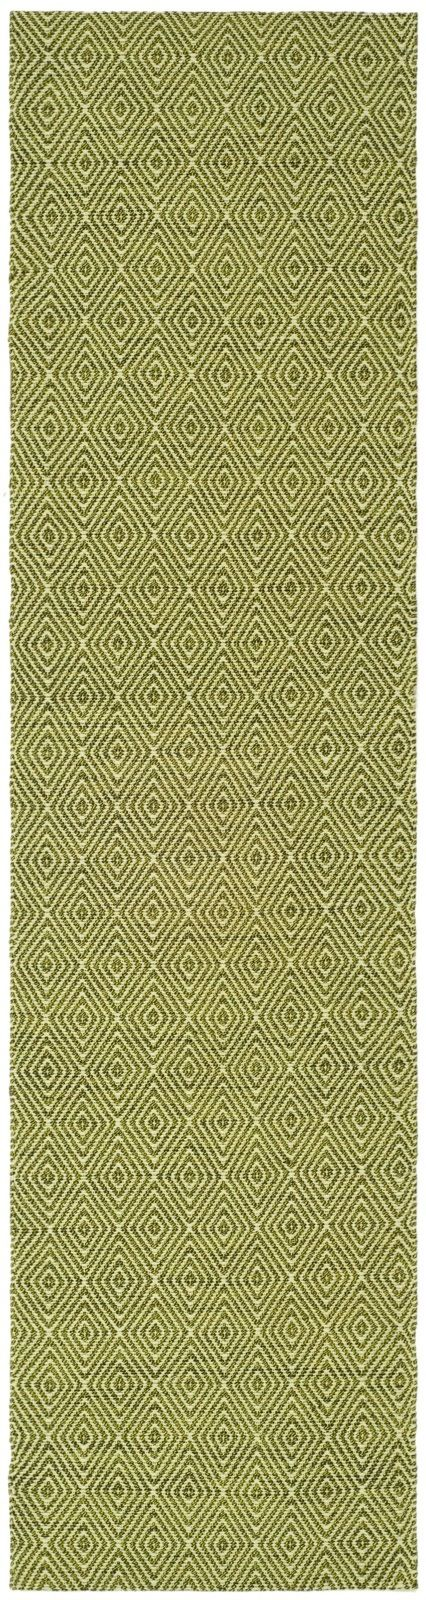 safavieh south hampton contemporary area rug collection